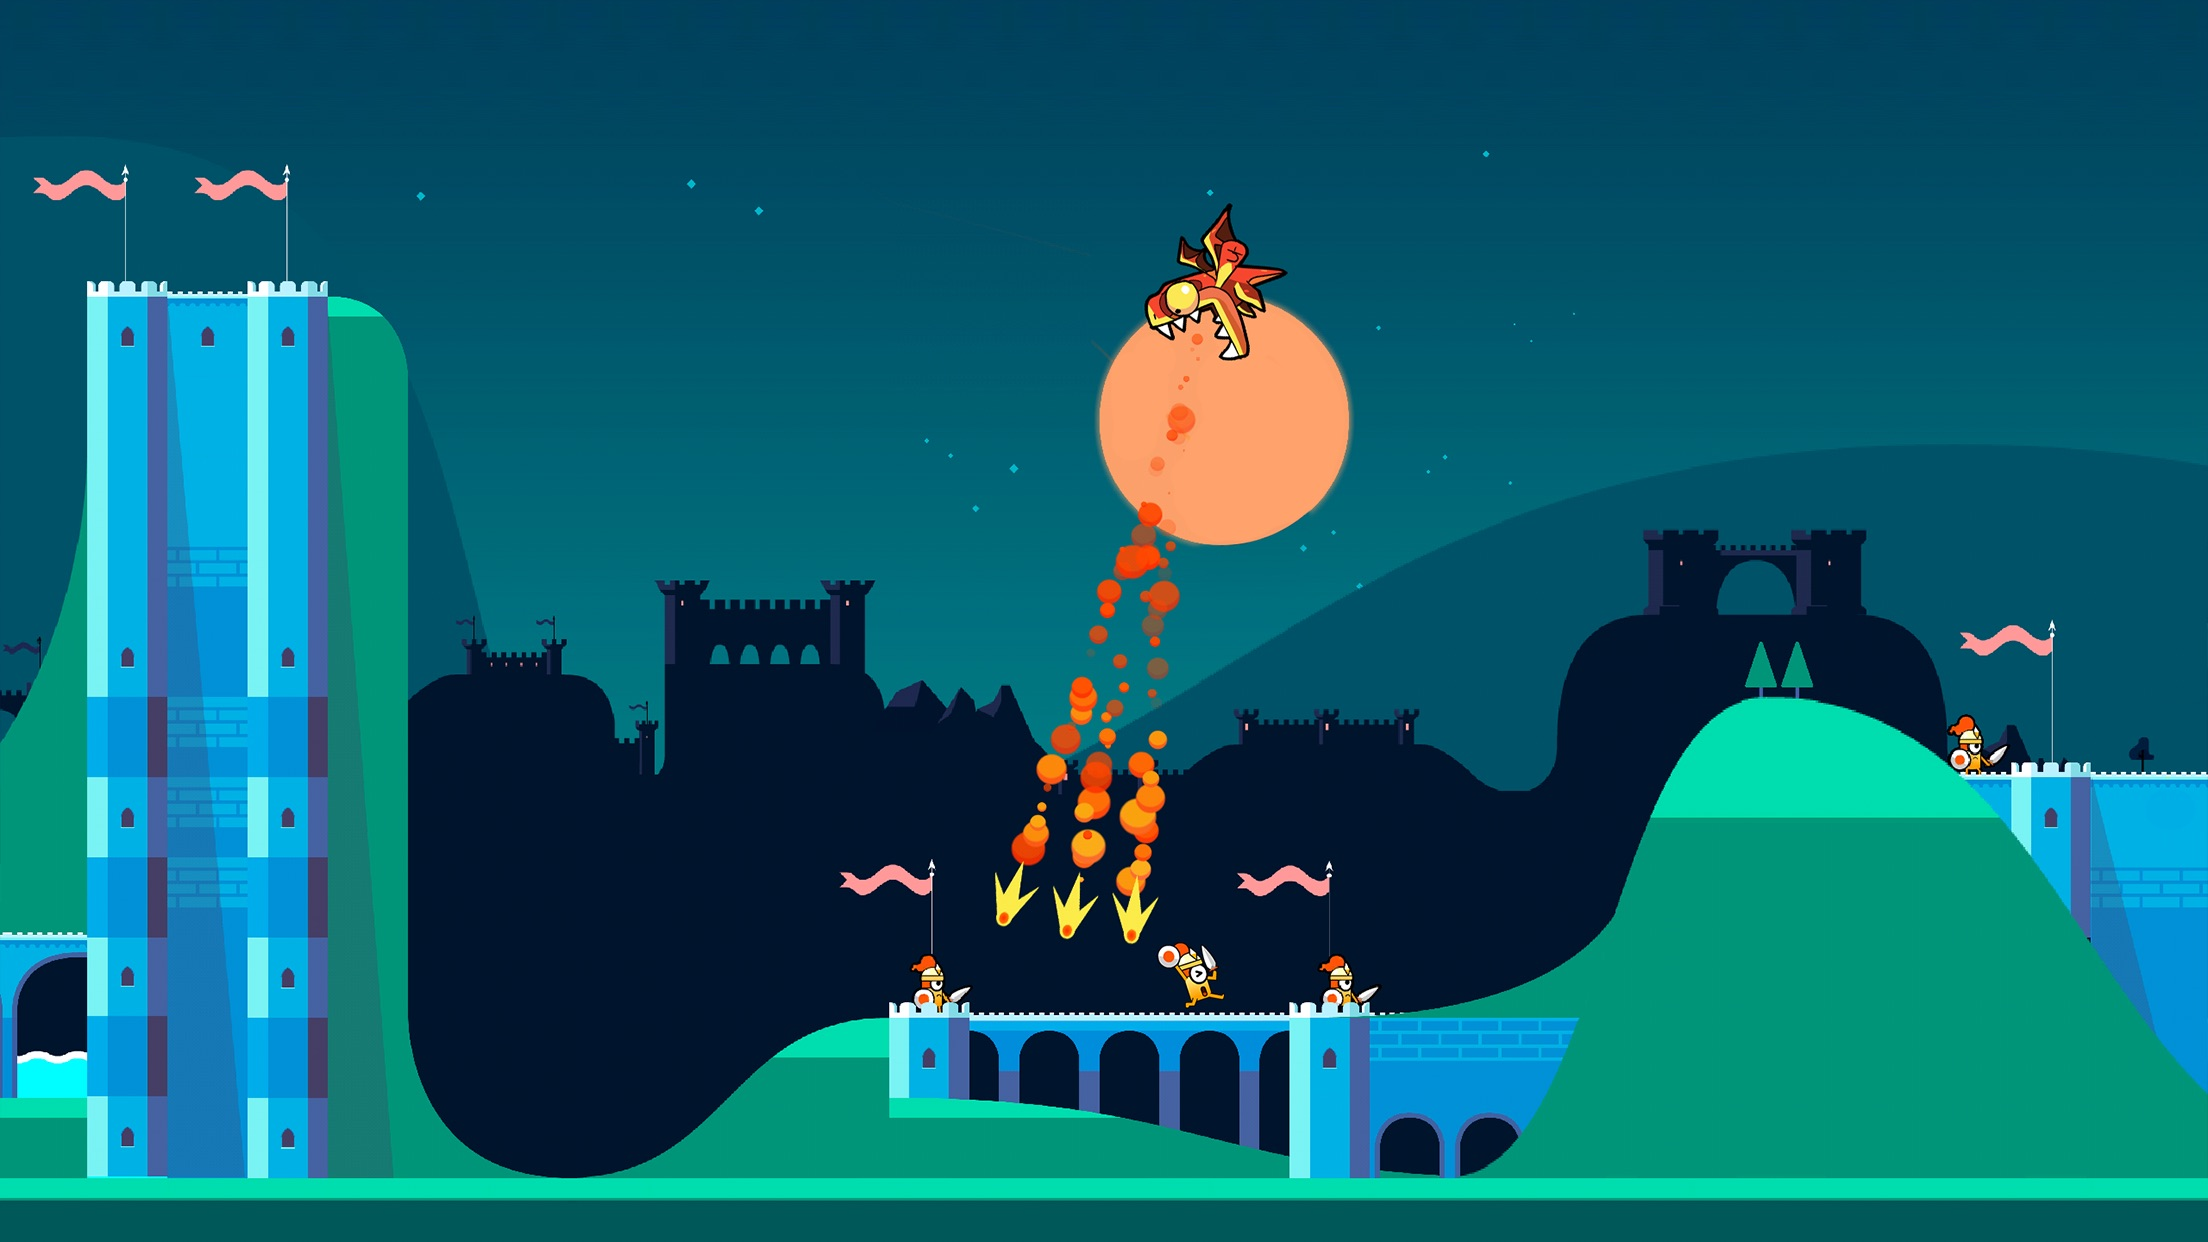 Drag'n'Boom Screenshot